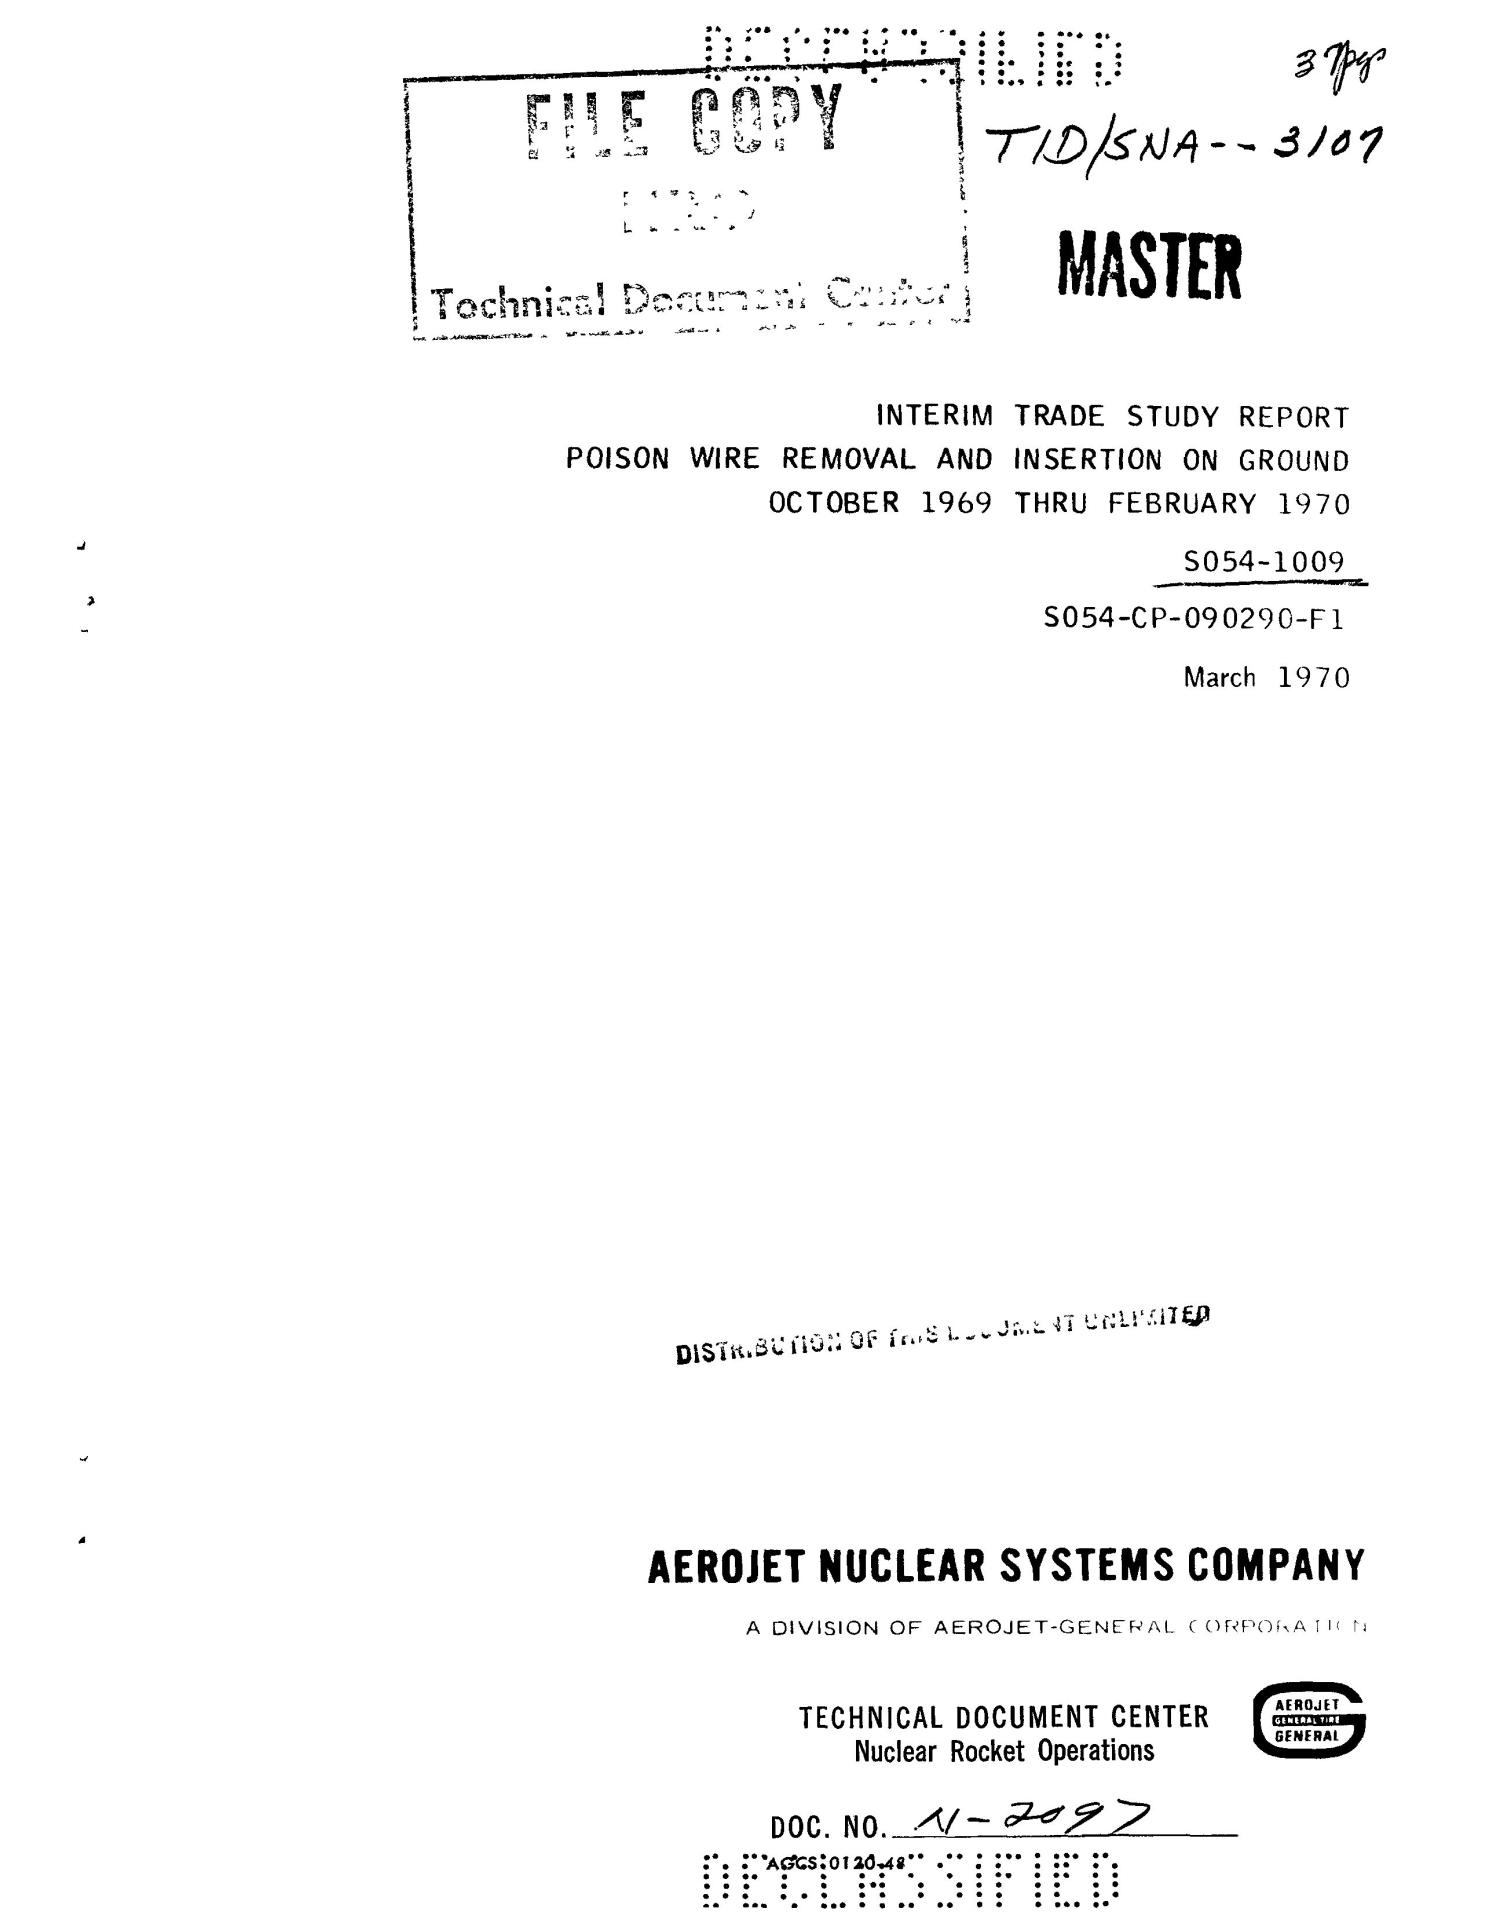 Poison wire removal and insertion on ground, October 1969 thru February 1970. Interim trade study report                                                                                                      [Sequence #]: 1 of 39